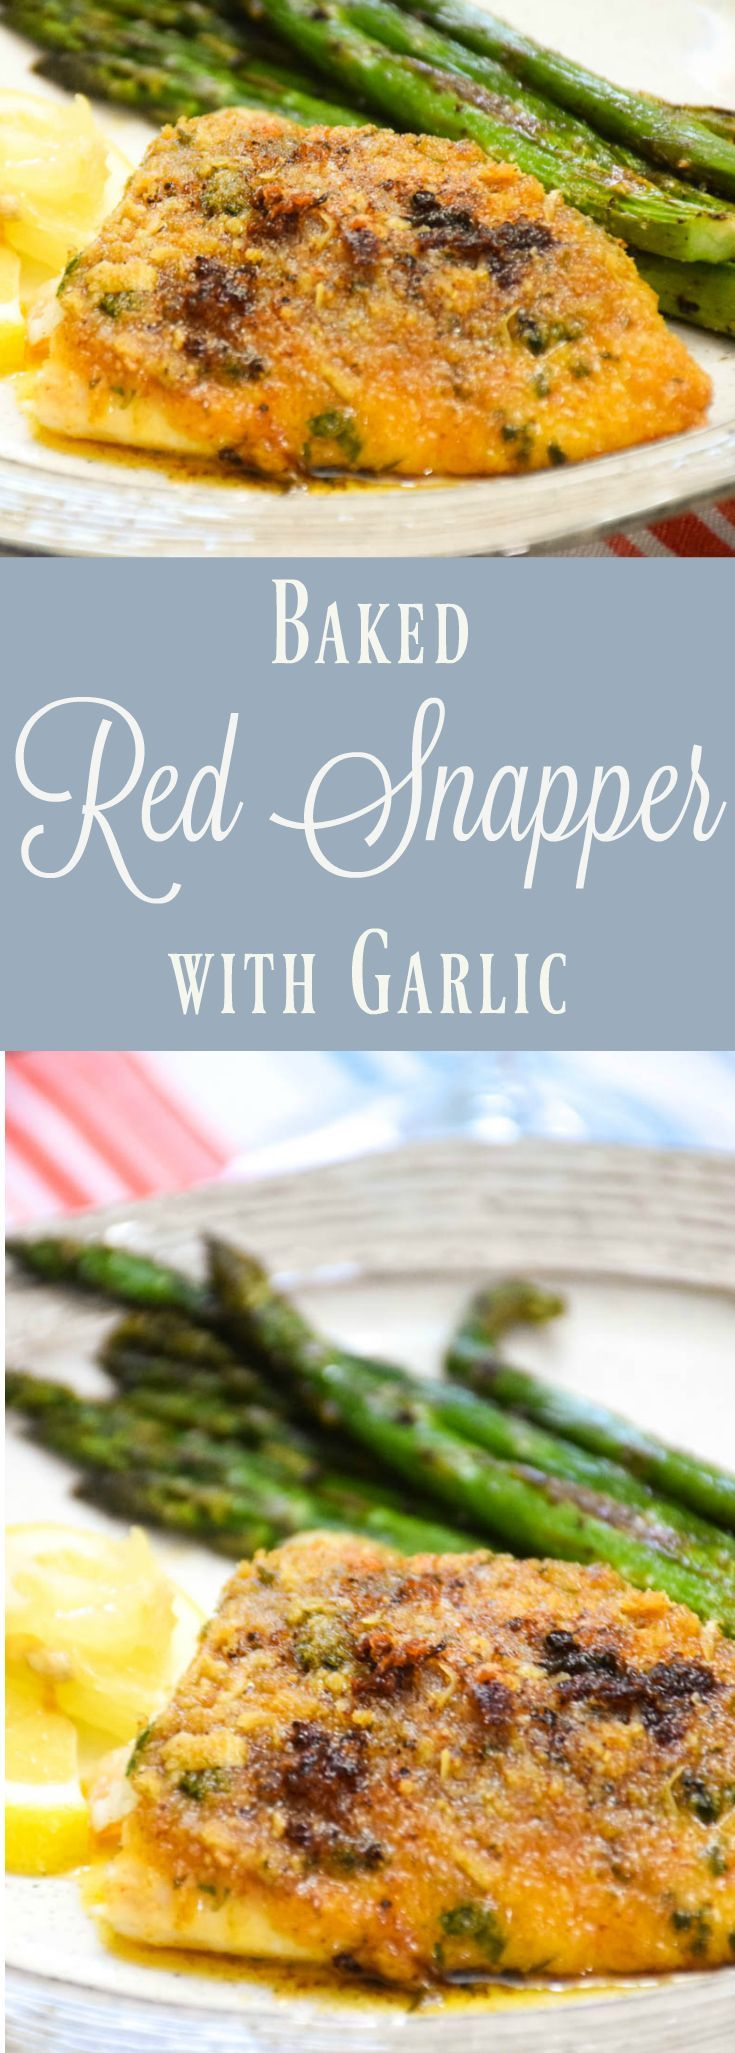 Quick and easy to put on the table any night of the week, Baked Red Snapper is full of buttery garlic flavor! Ready in minutes, and so delicious!